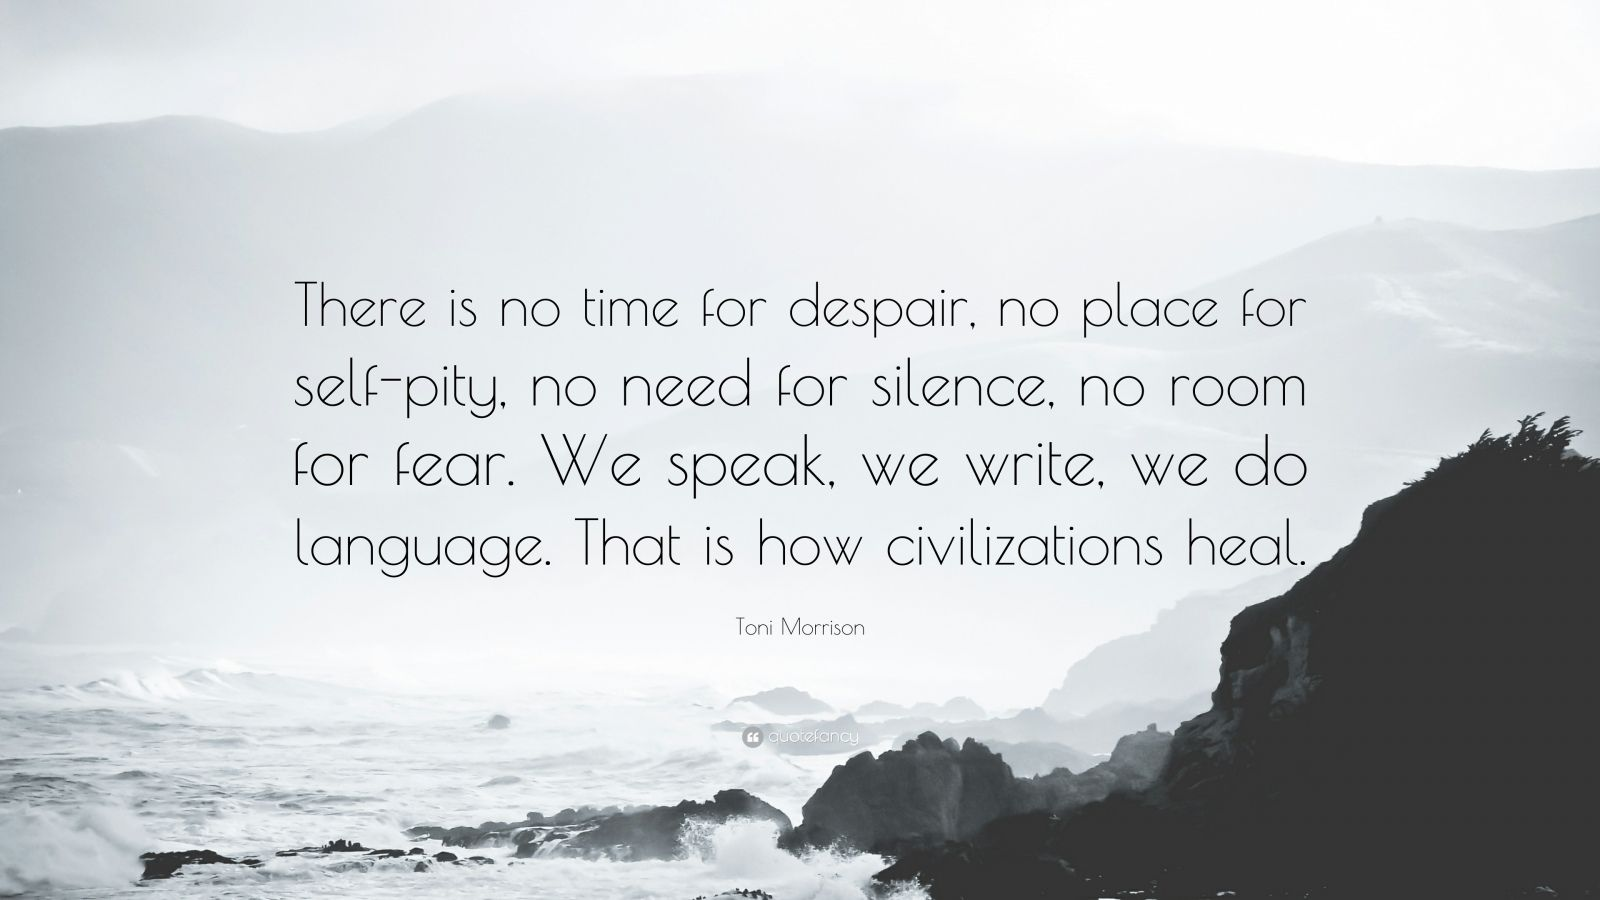 "Toni Morrison Quote: ""There is no time for despair, no place for self-pity, no need for silence, no room for fear. We speak, we write, we do language. That is how civilizations heal."""